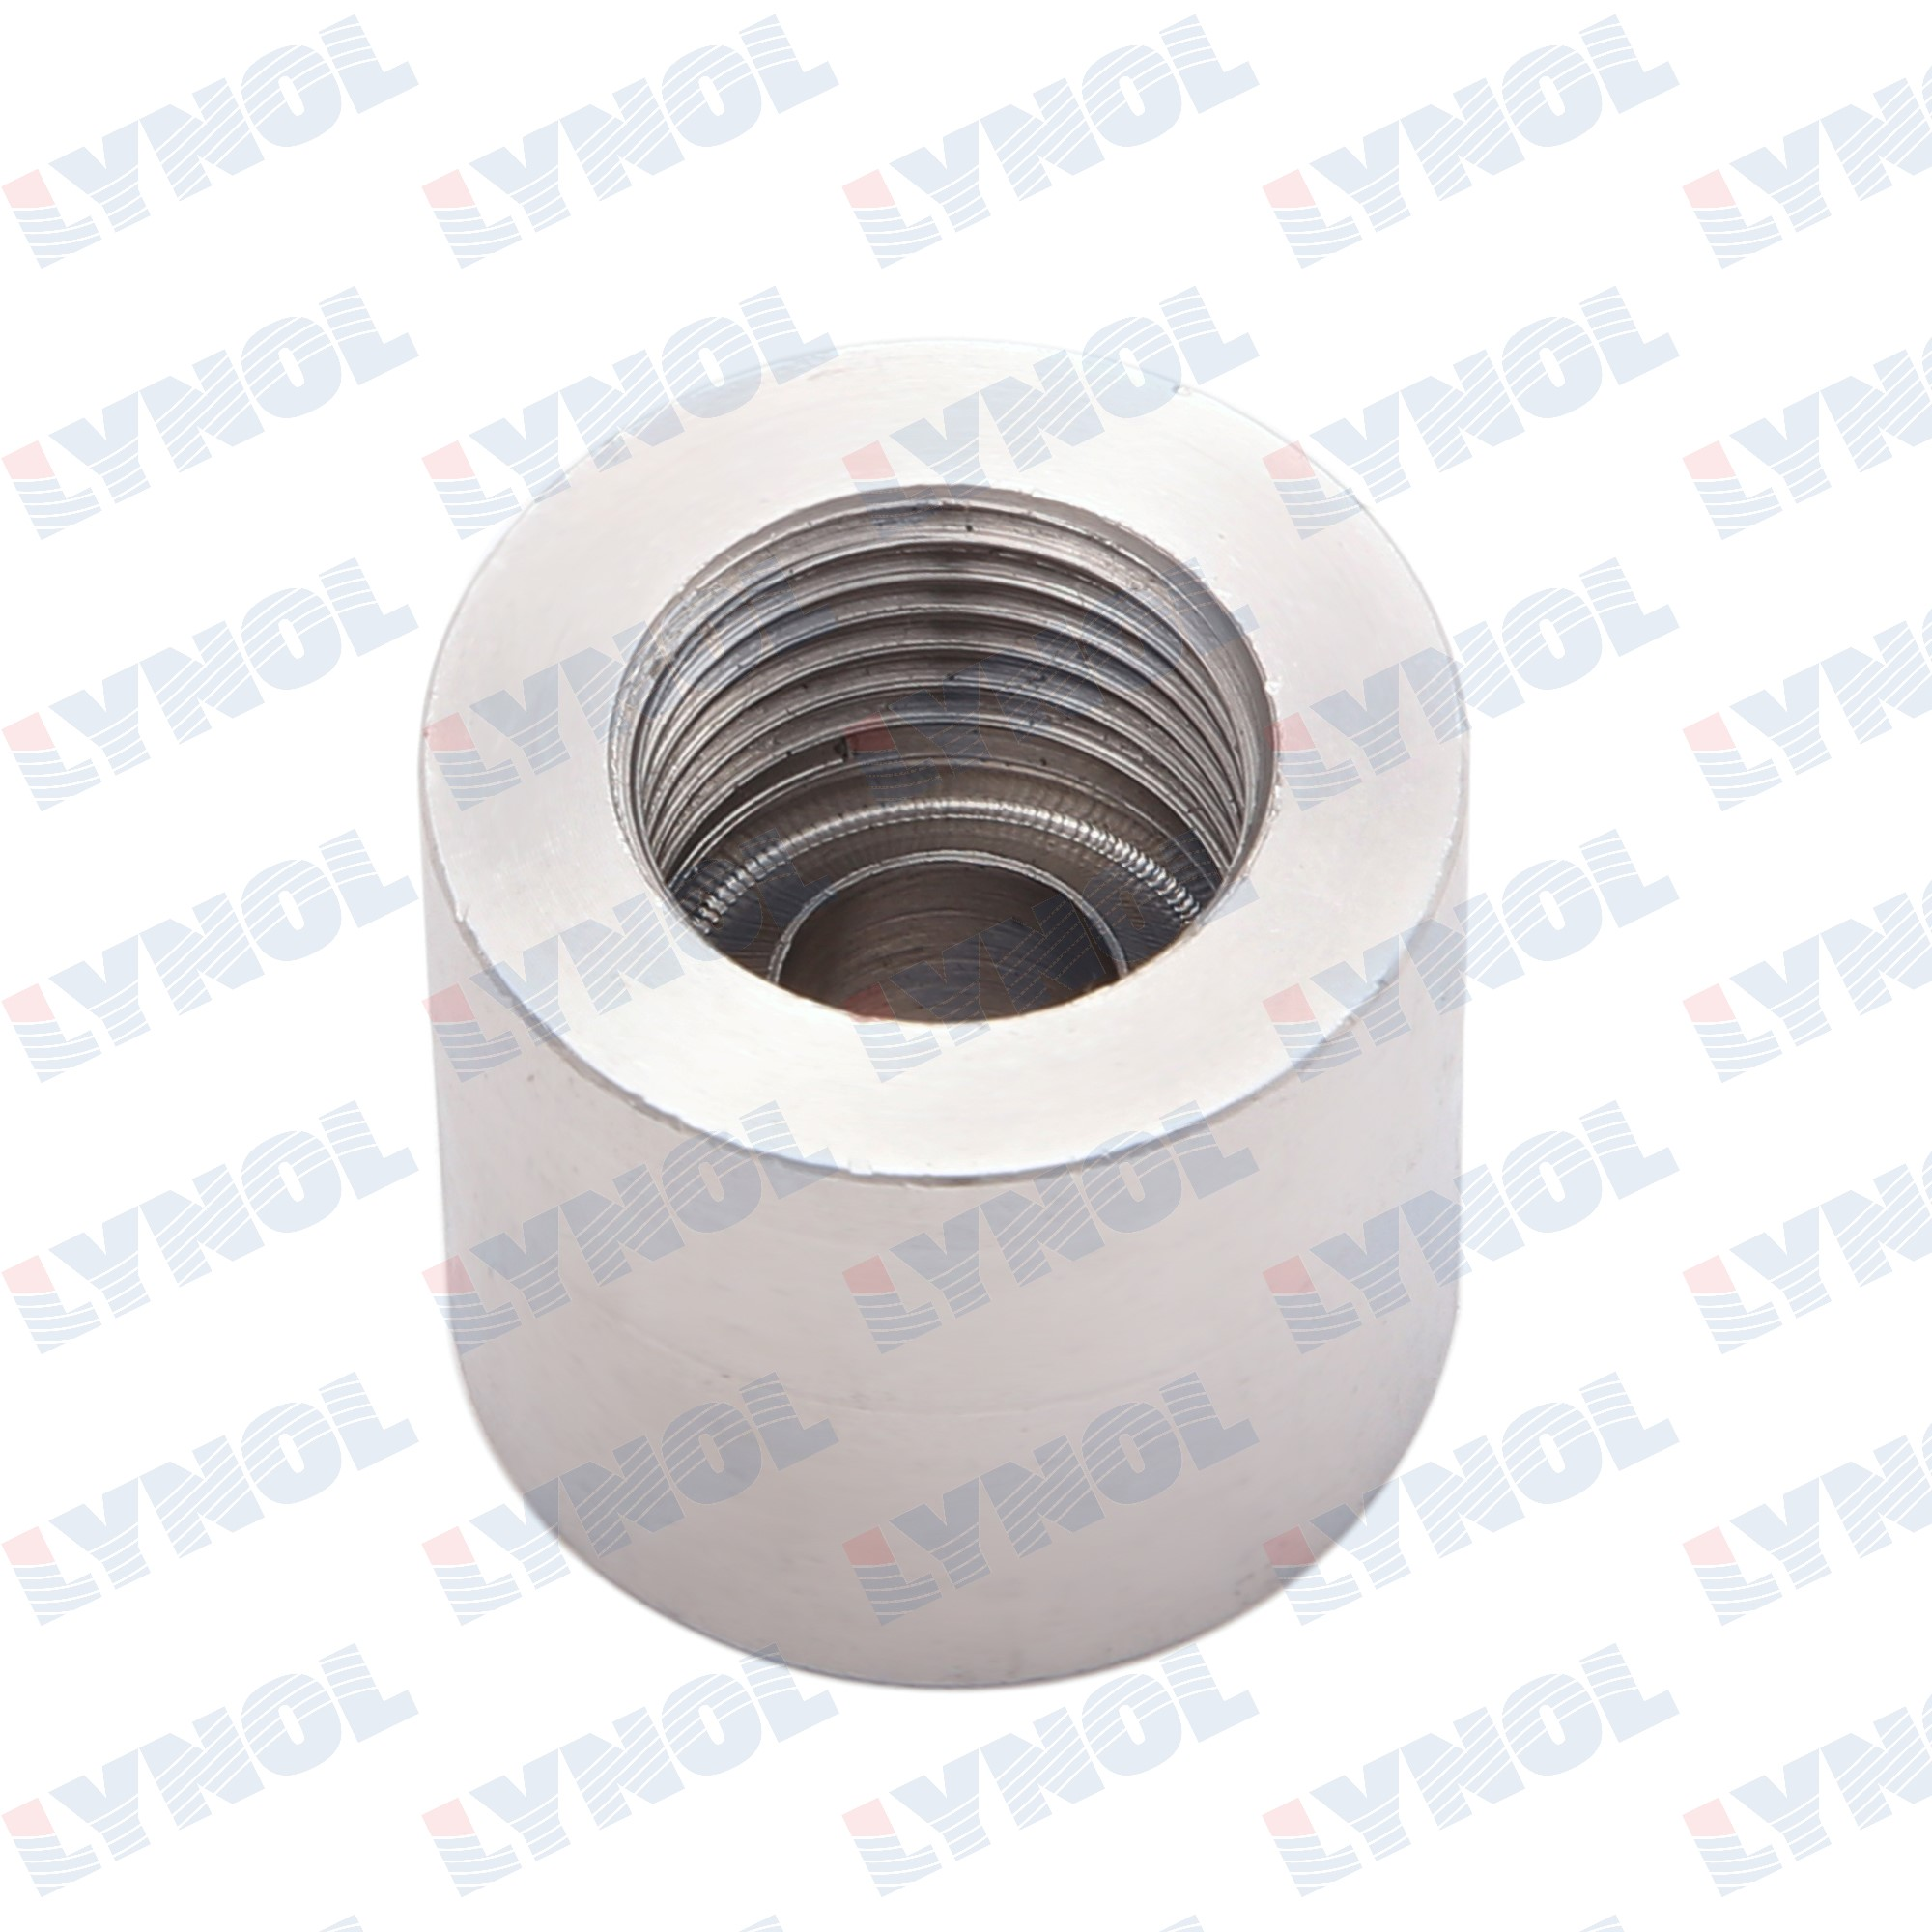 4504001 - SENSOR BUNG - M16*1.5 - Reverse Flare Overall Length 7/8'', Outside Diameter 1''